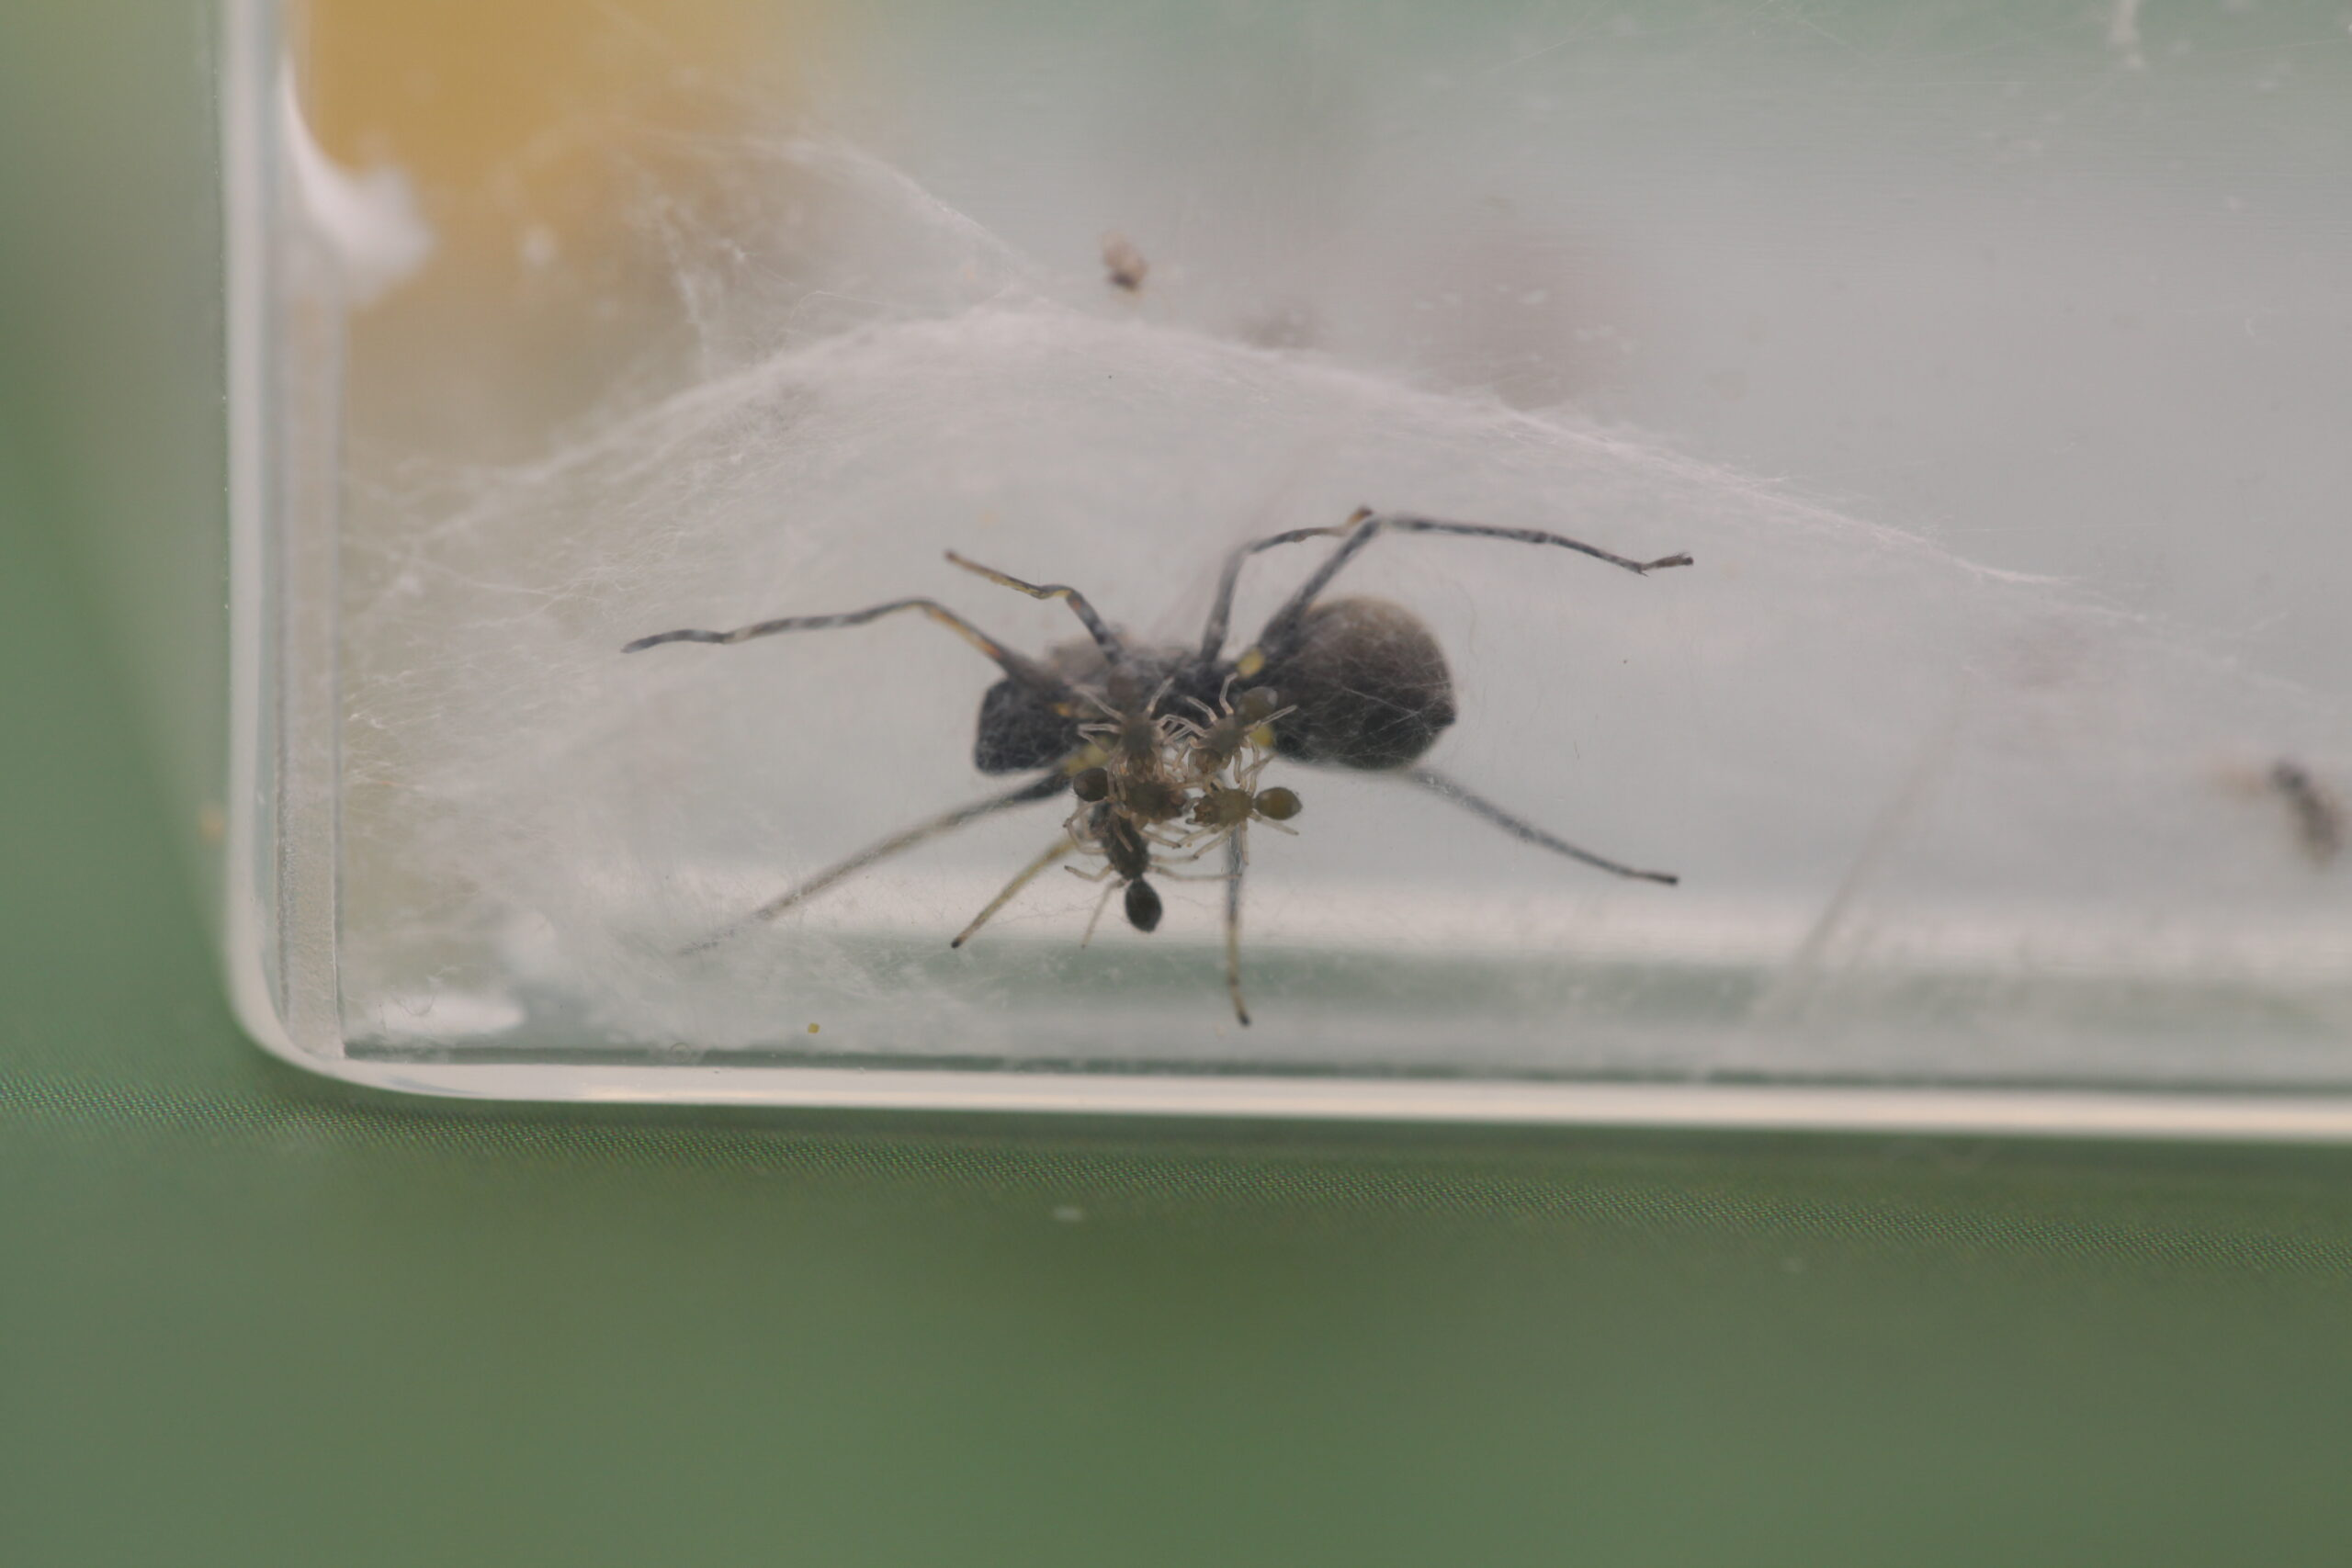 These spiders make protein-packed milk for their young